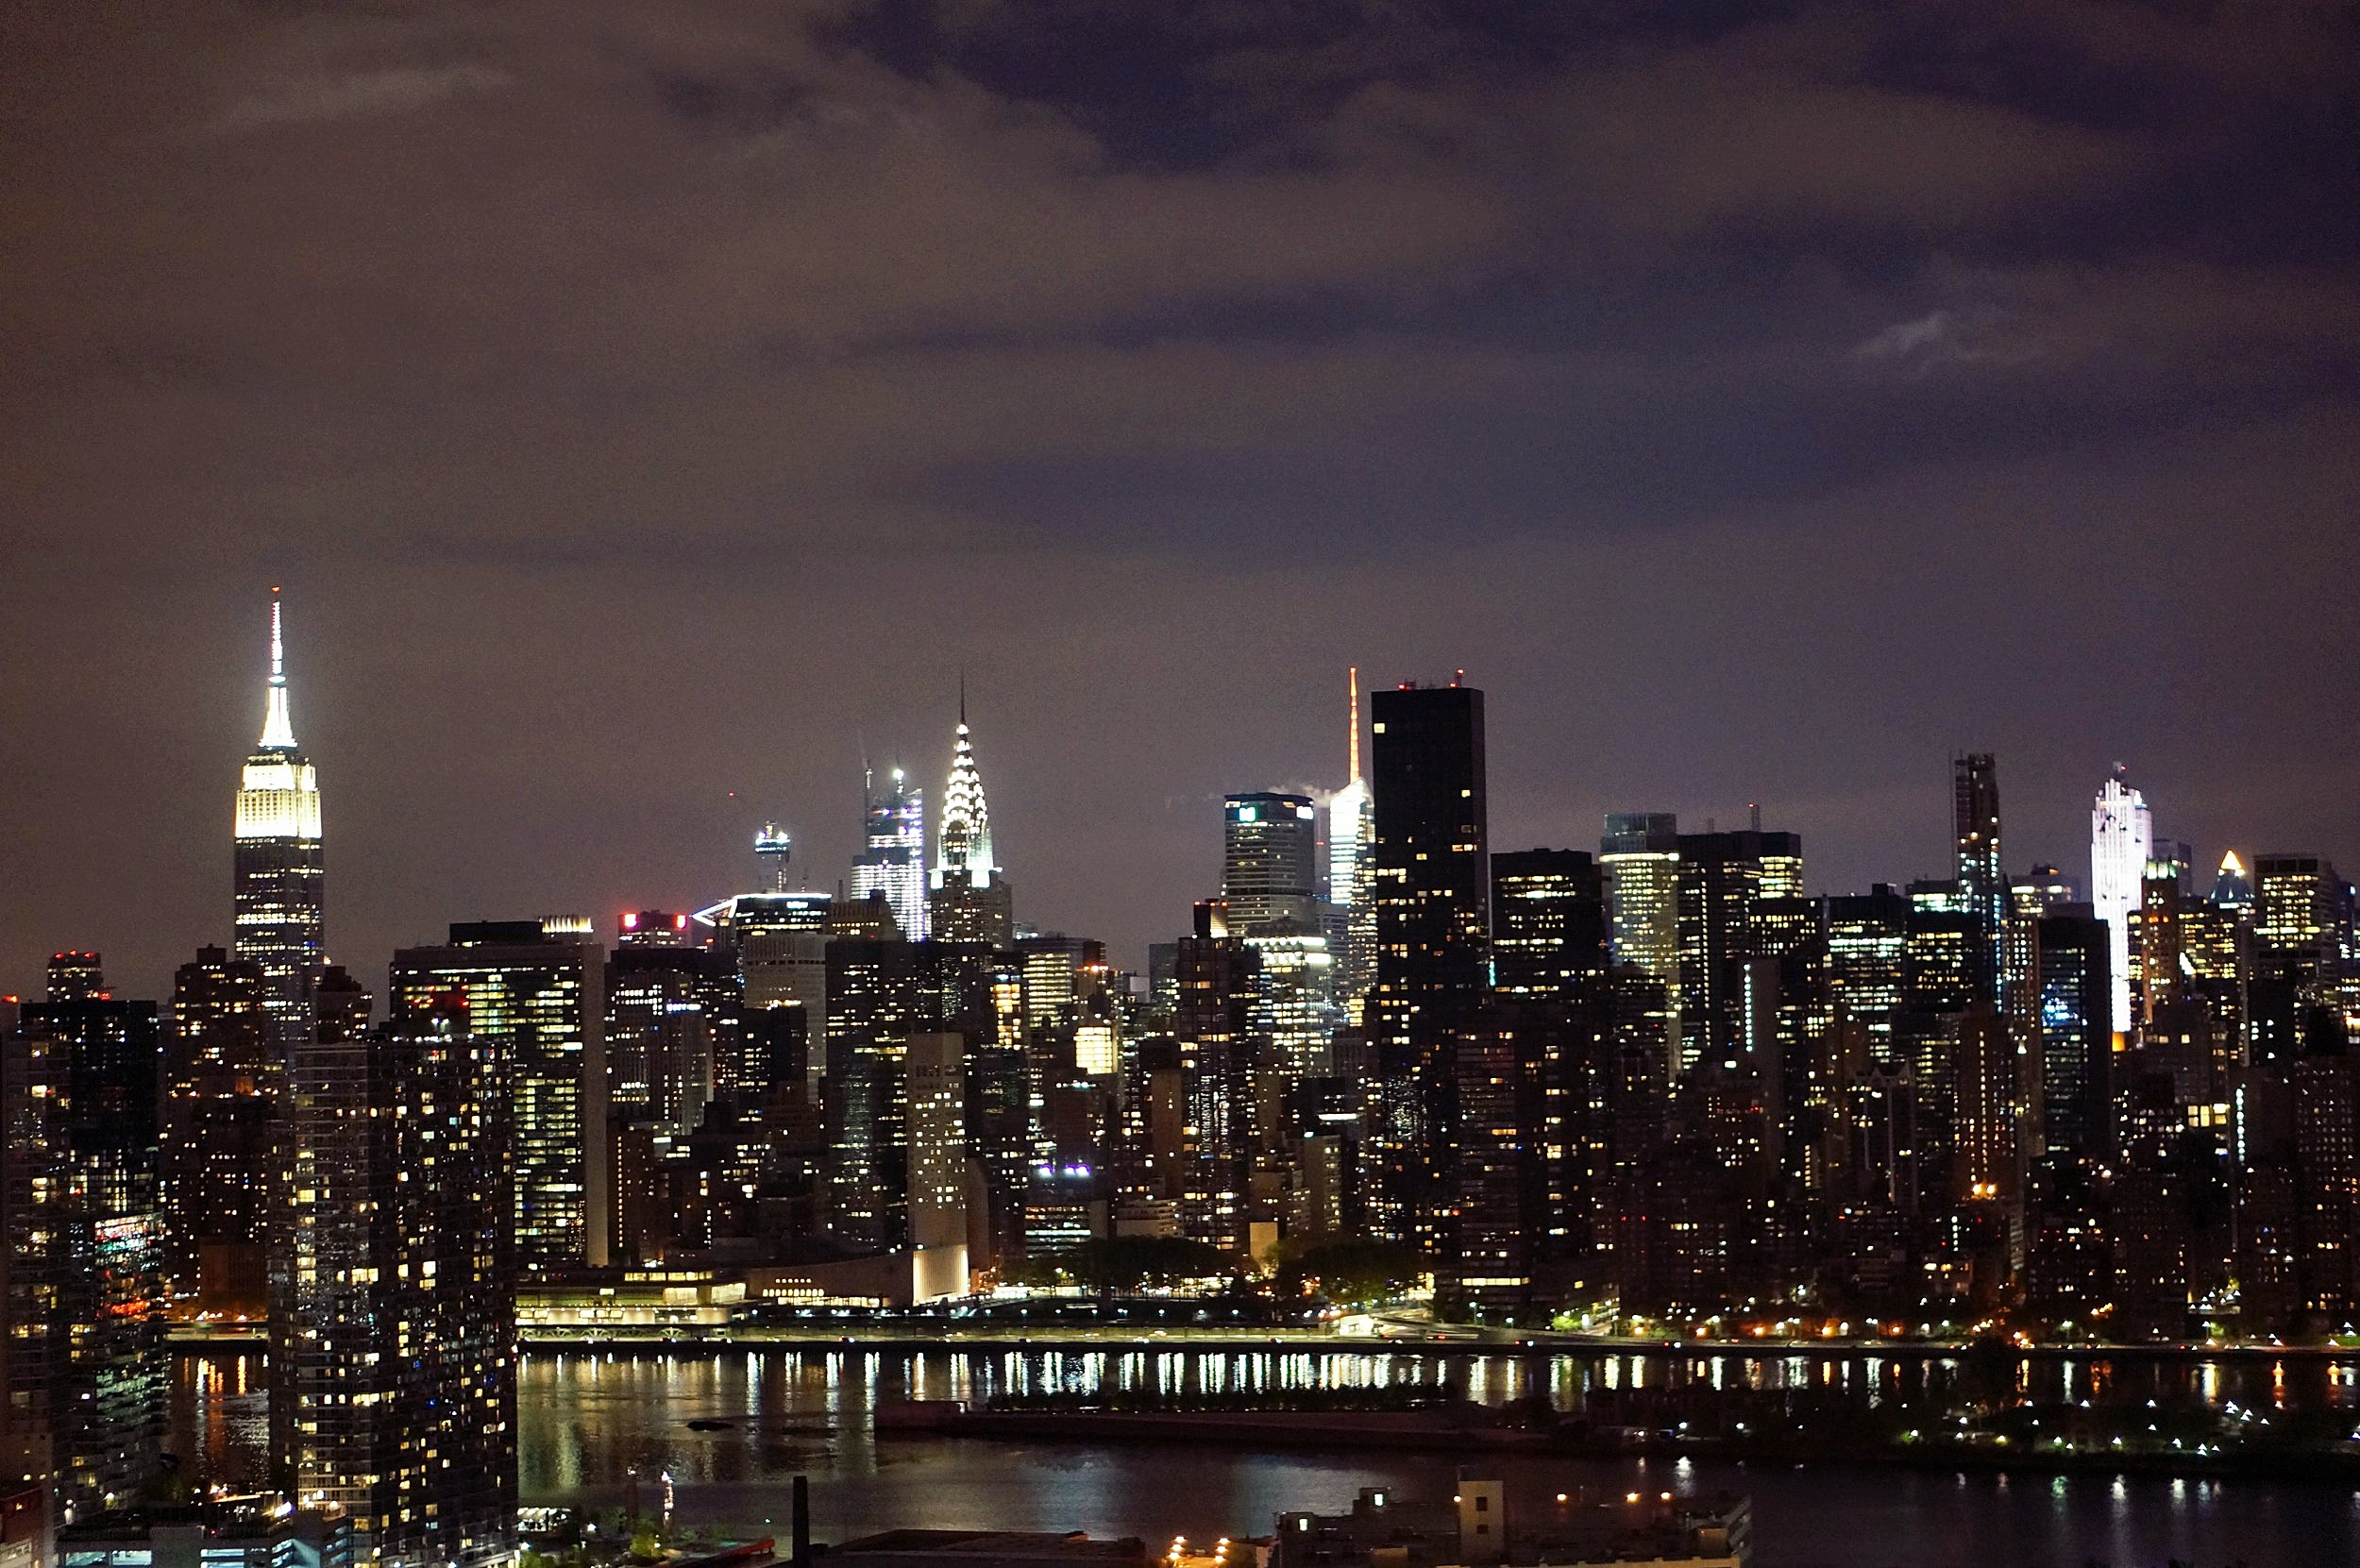 One of the city skyline photos I took from my friend's rooftop.